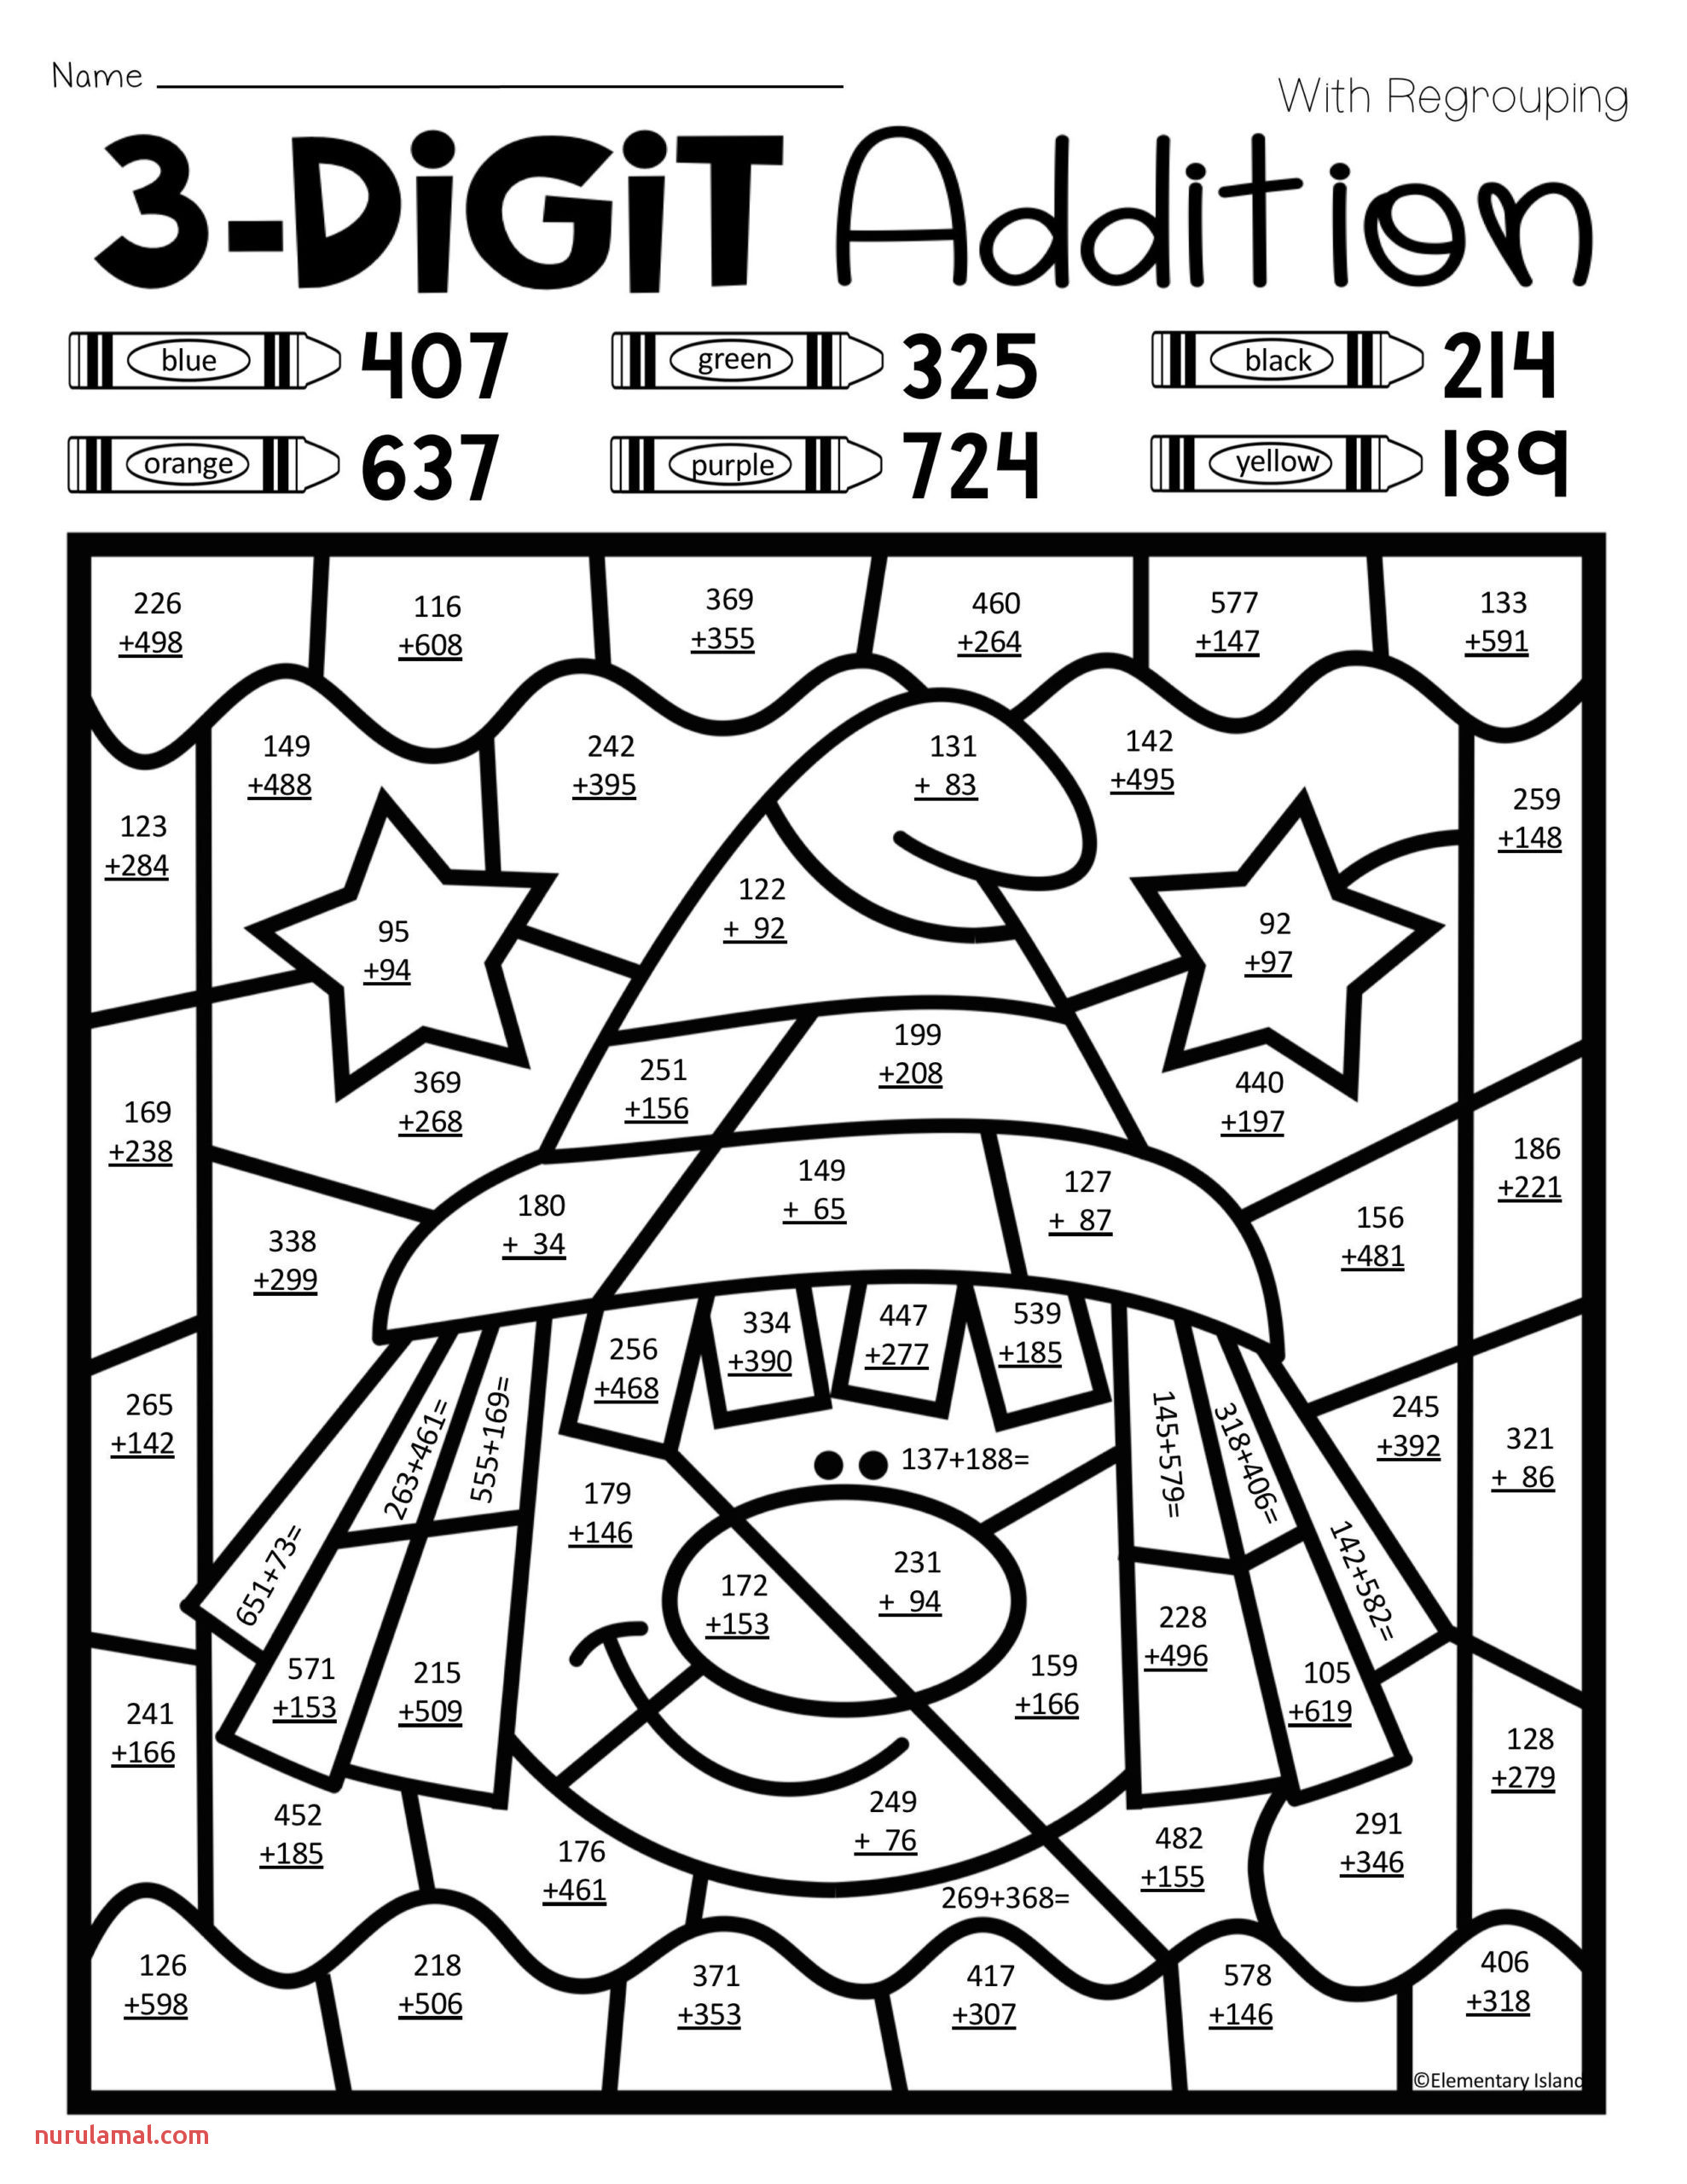 Addition Coloring Worksheets 2nd Grade Coloring Book Addition Turkeyeets Printable and Activities